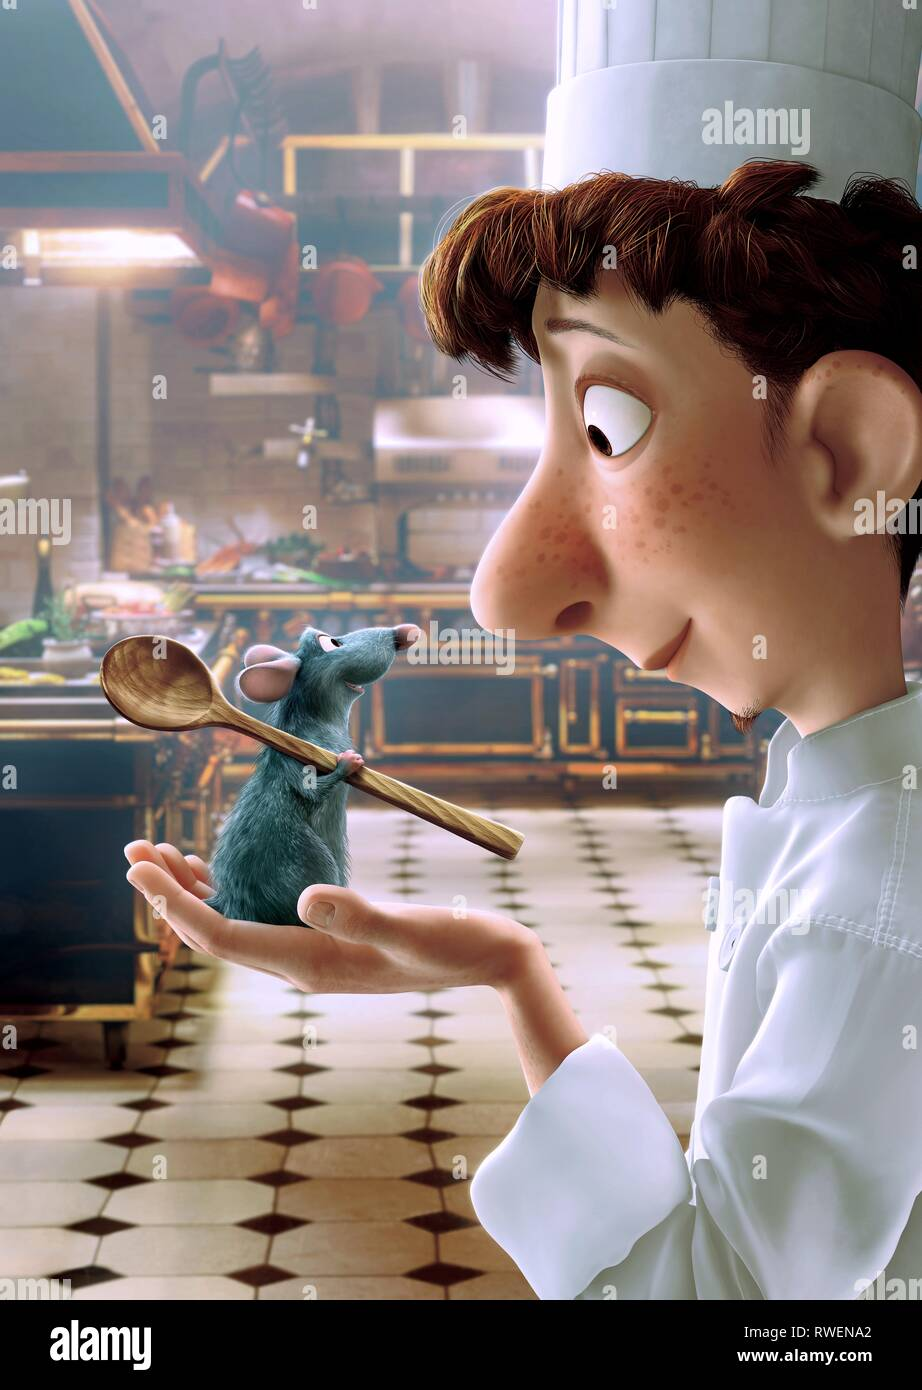 Ratatouille Movie High Resolution Stock Photography And Images Alamy